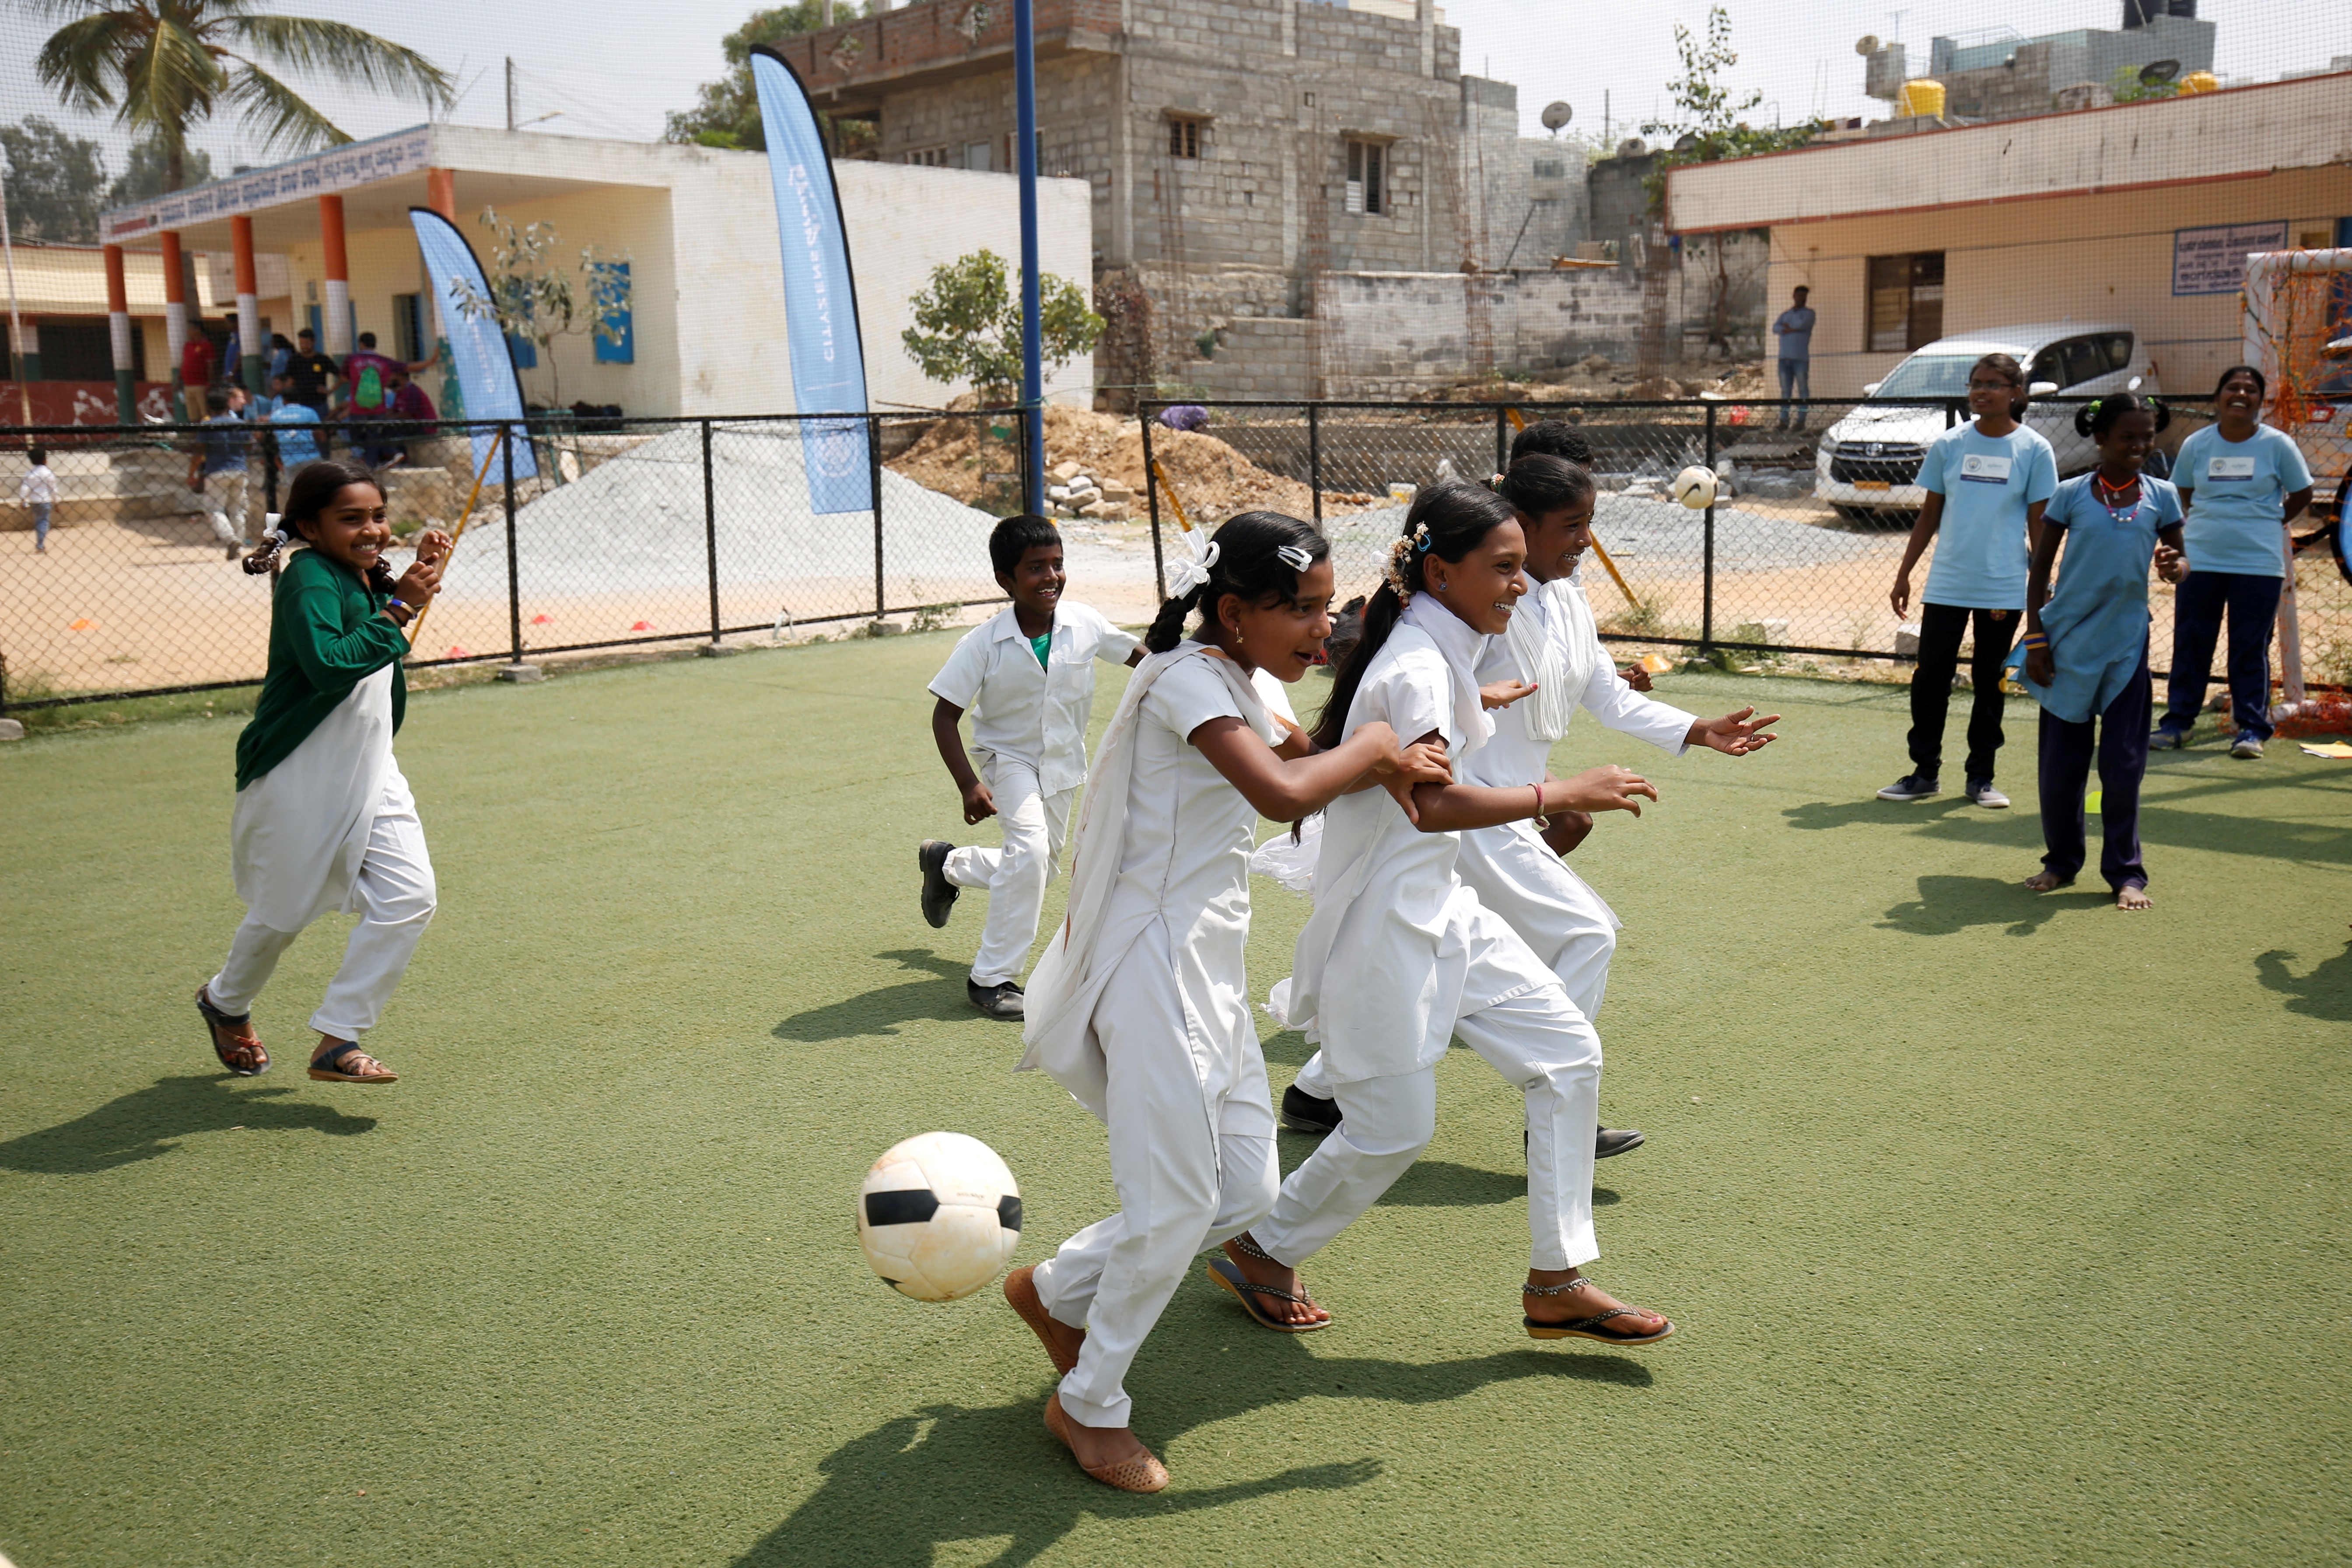 Children take part in a game